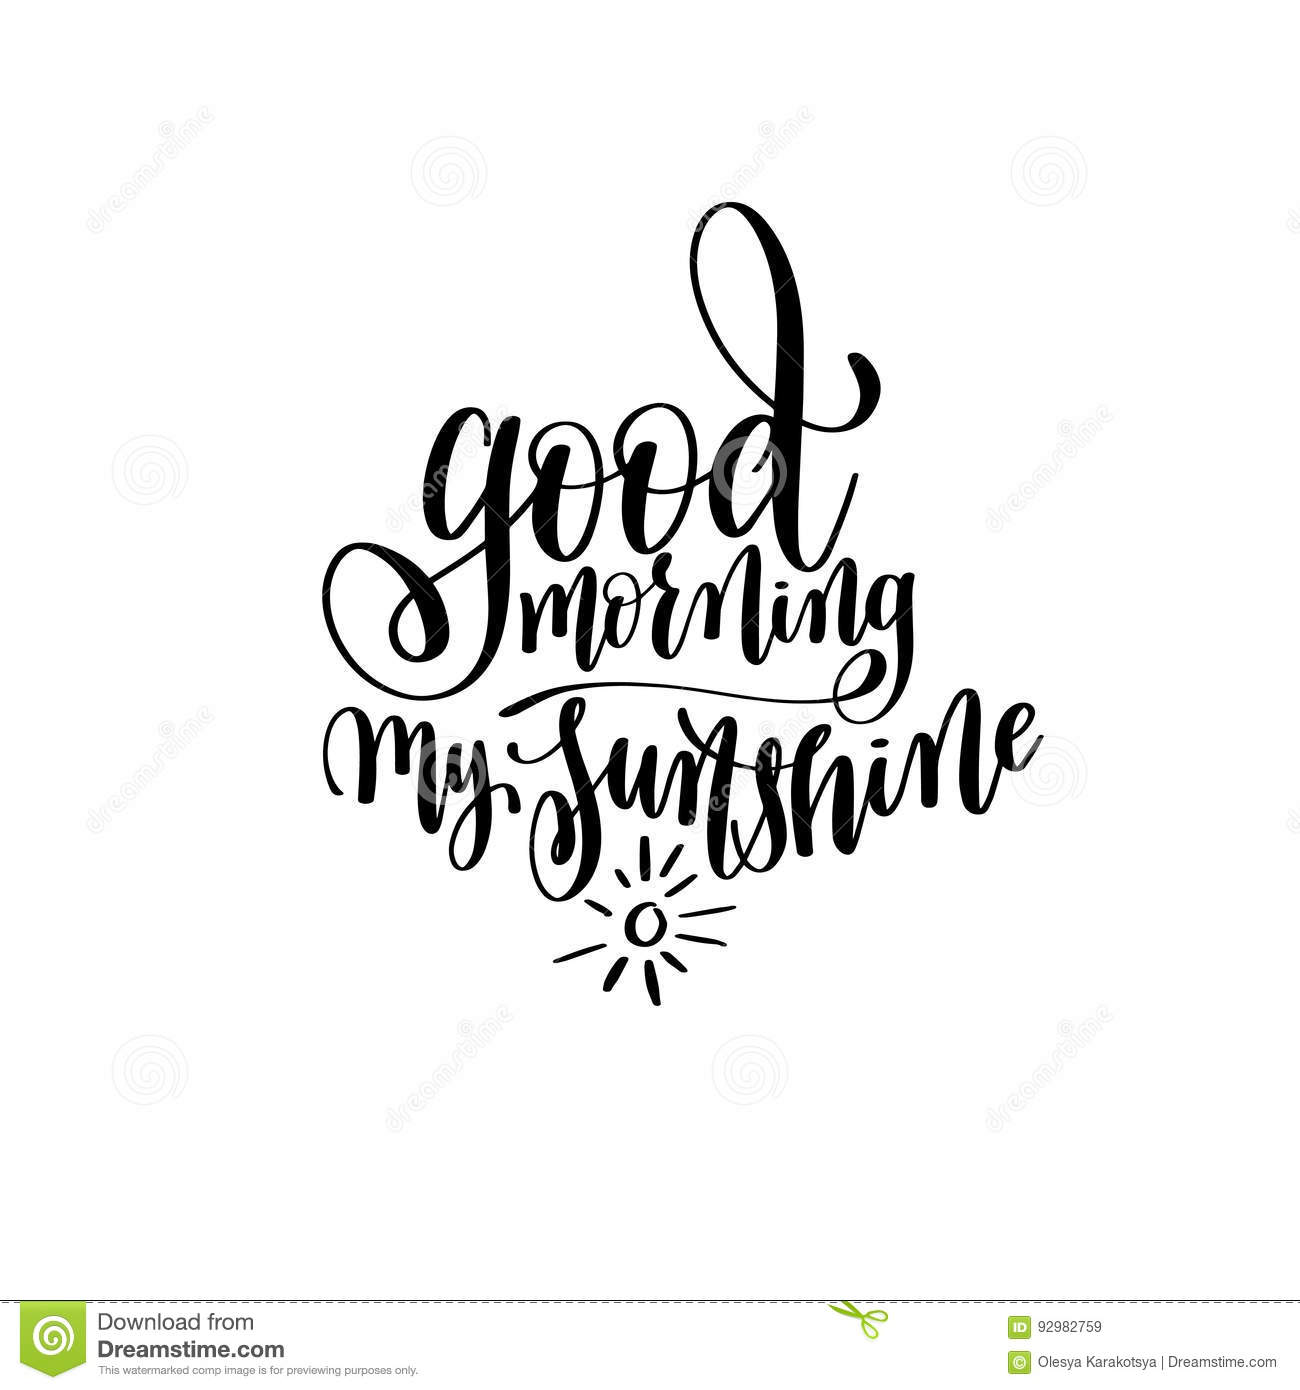 Good Morning My Sunshine In German : Good morning my sunshine black and white hand written